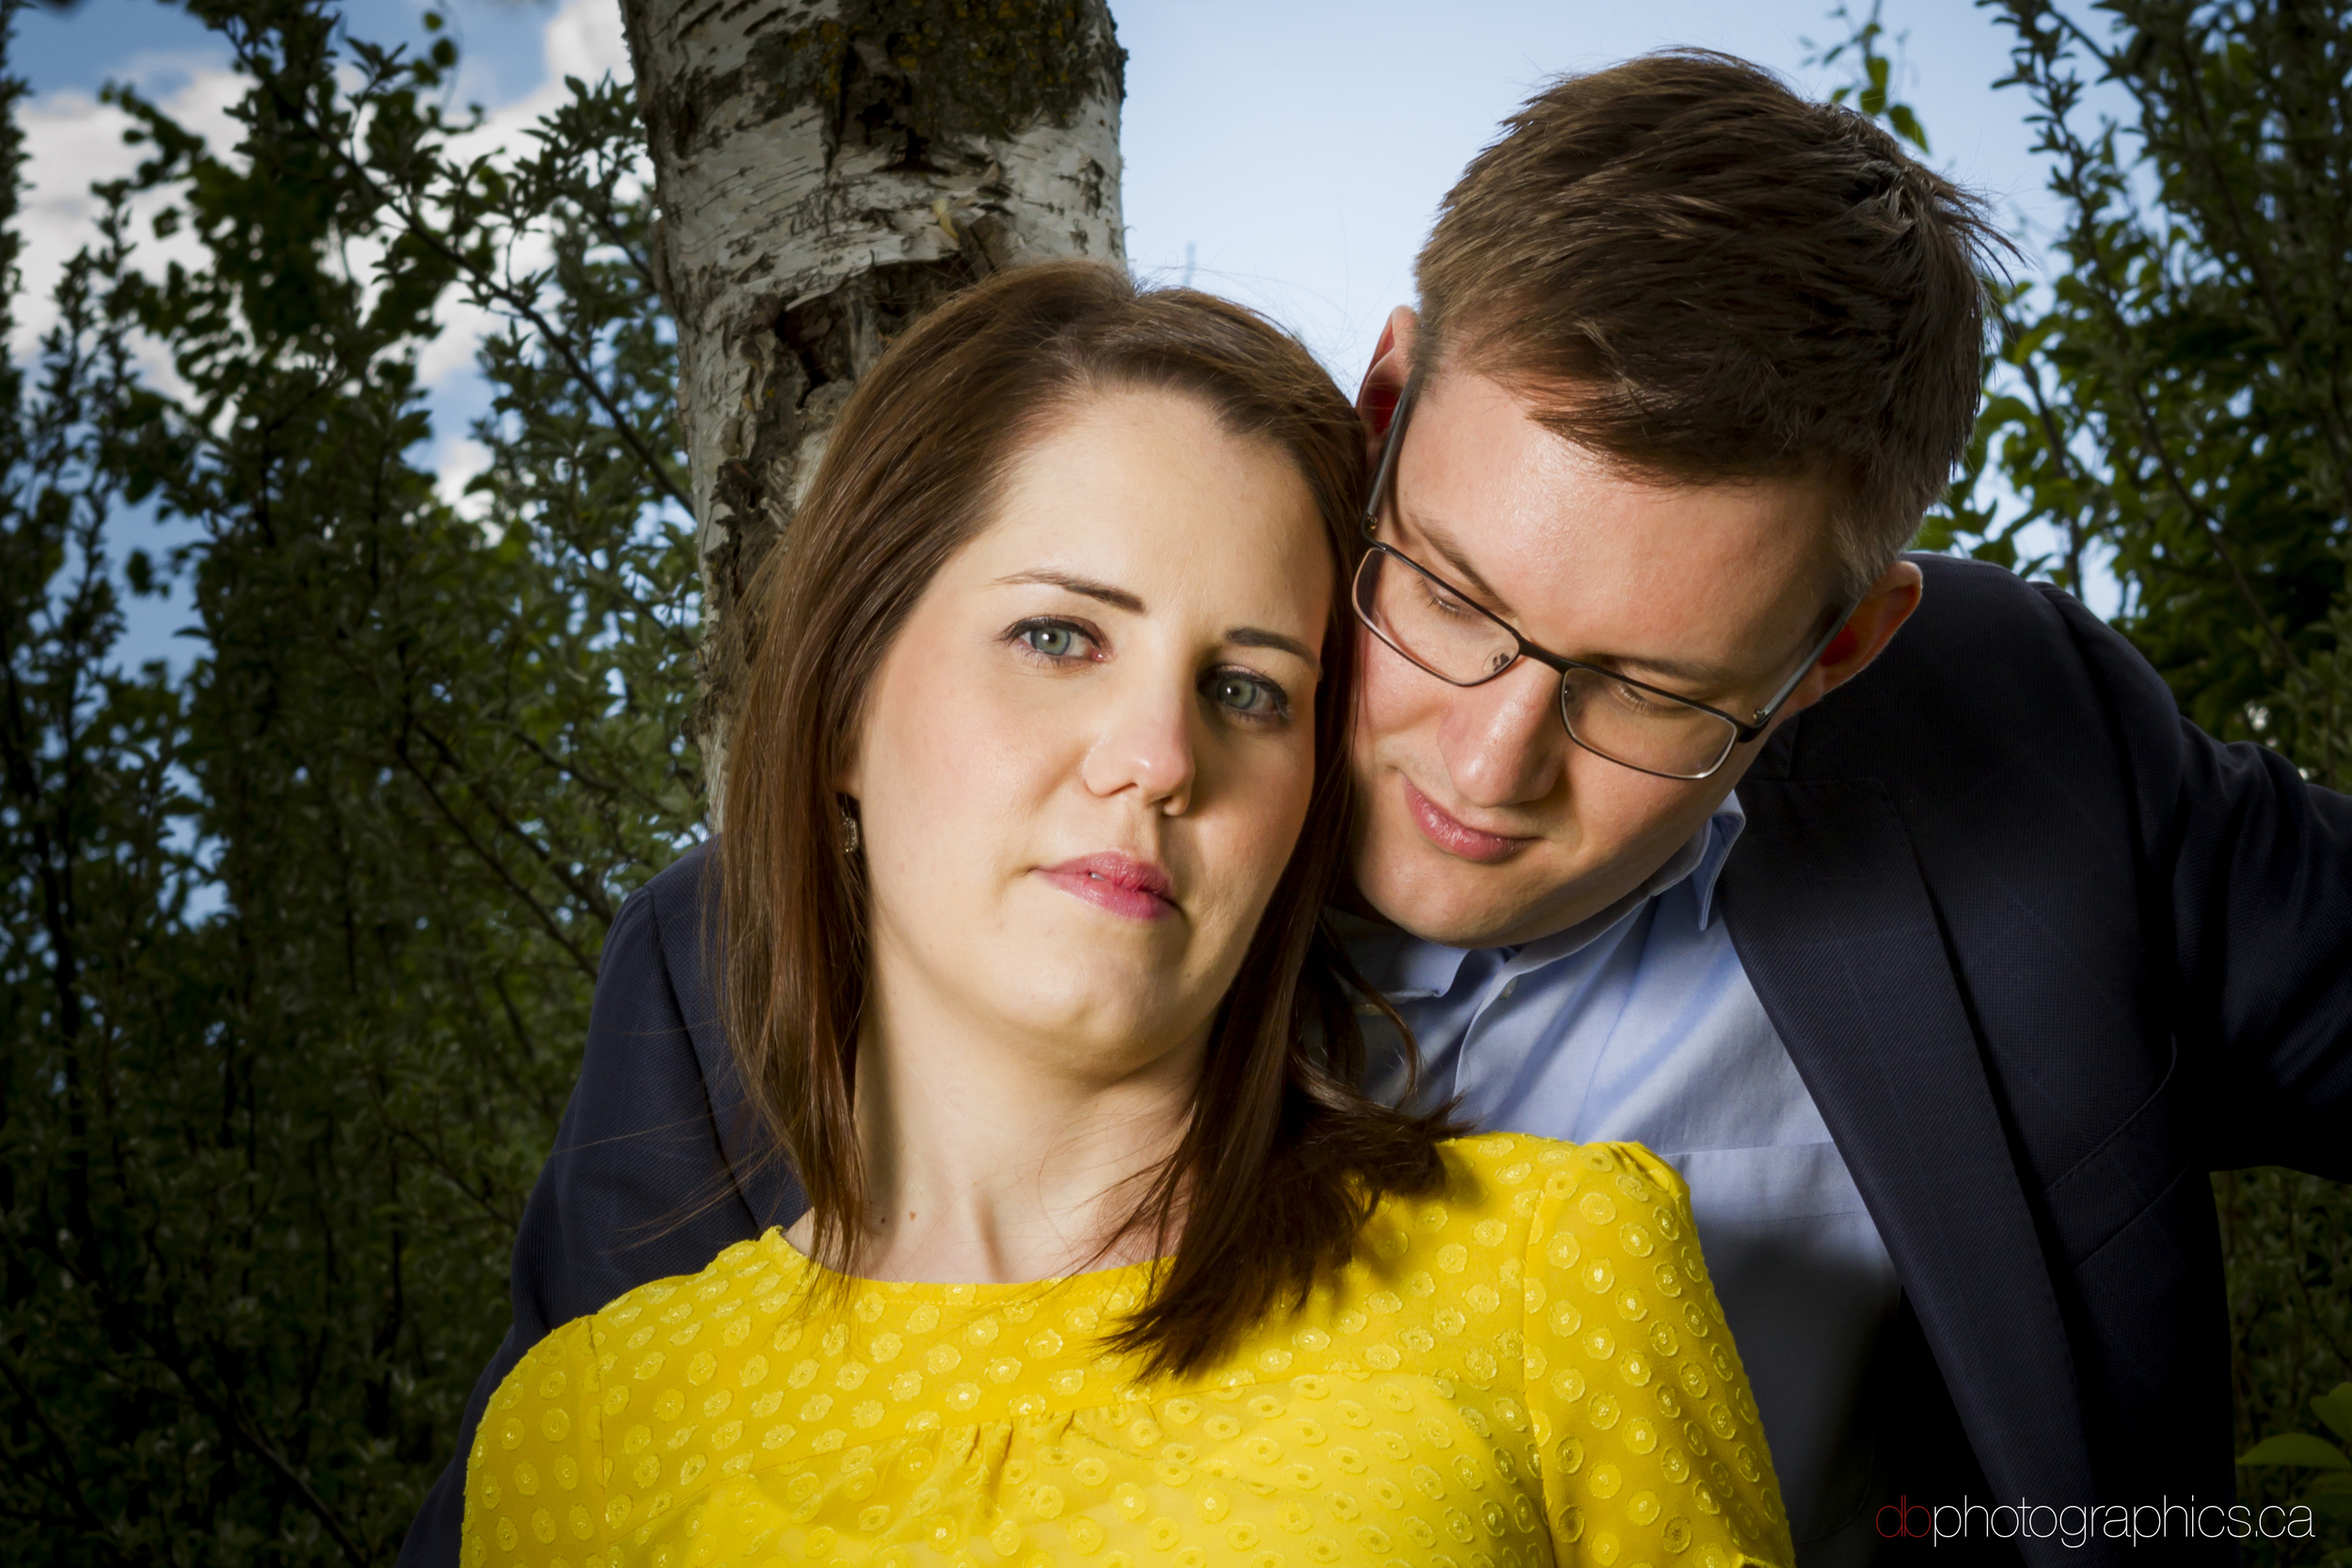 Paula-Andrew-Engagement-71-lr-blog.jpg